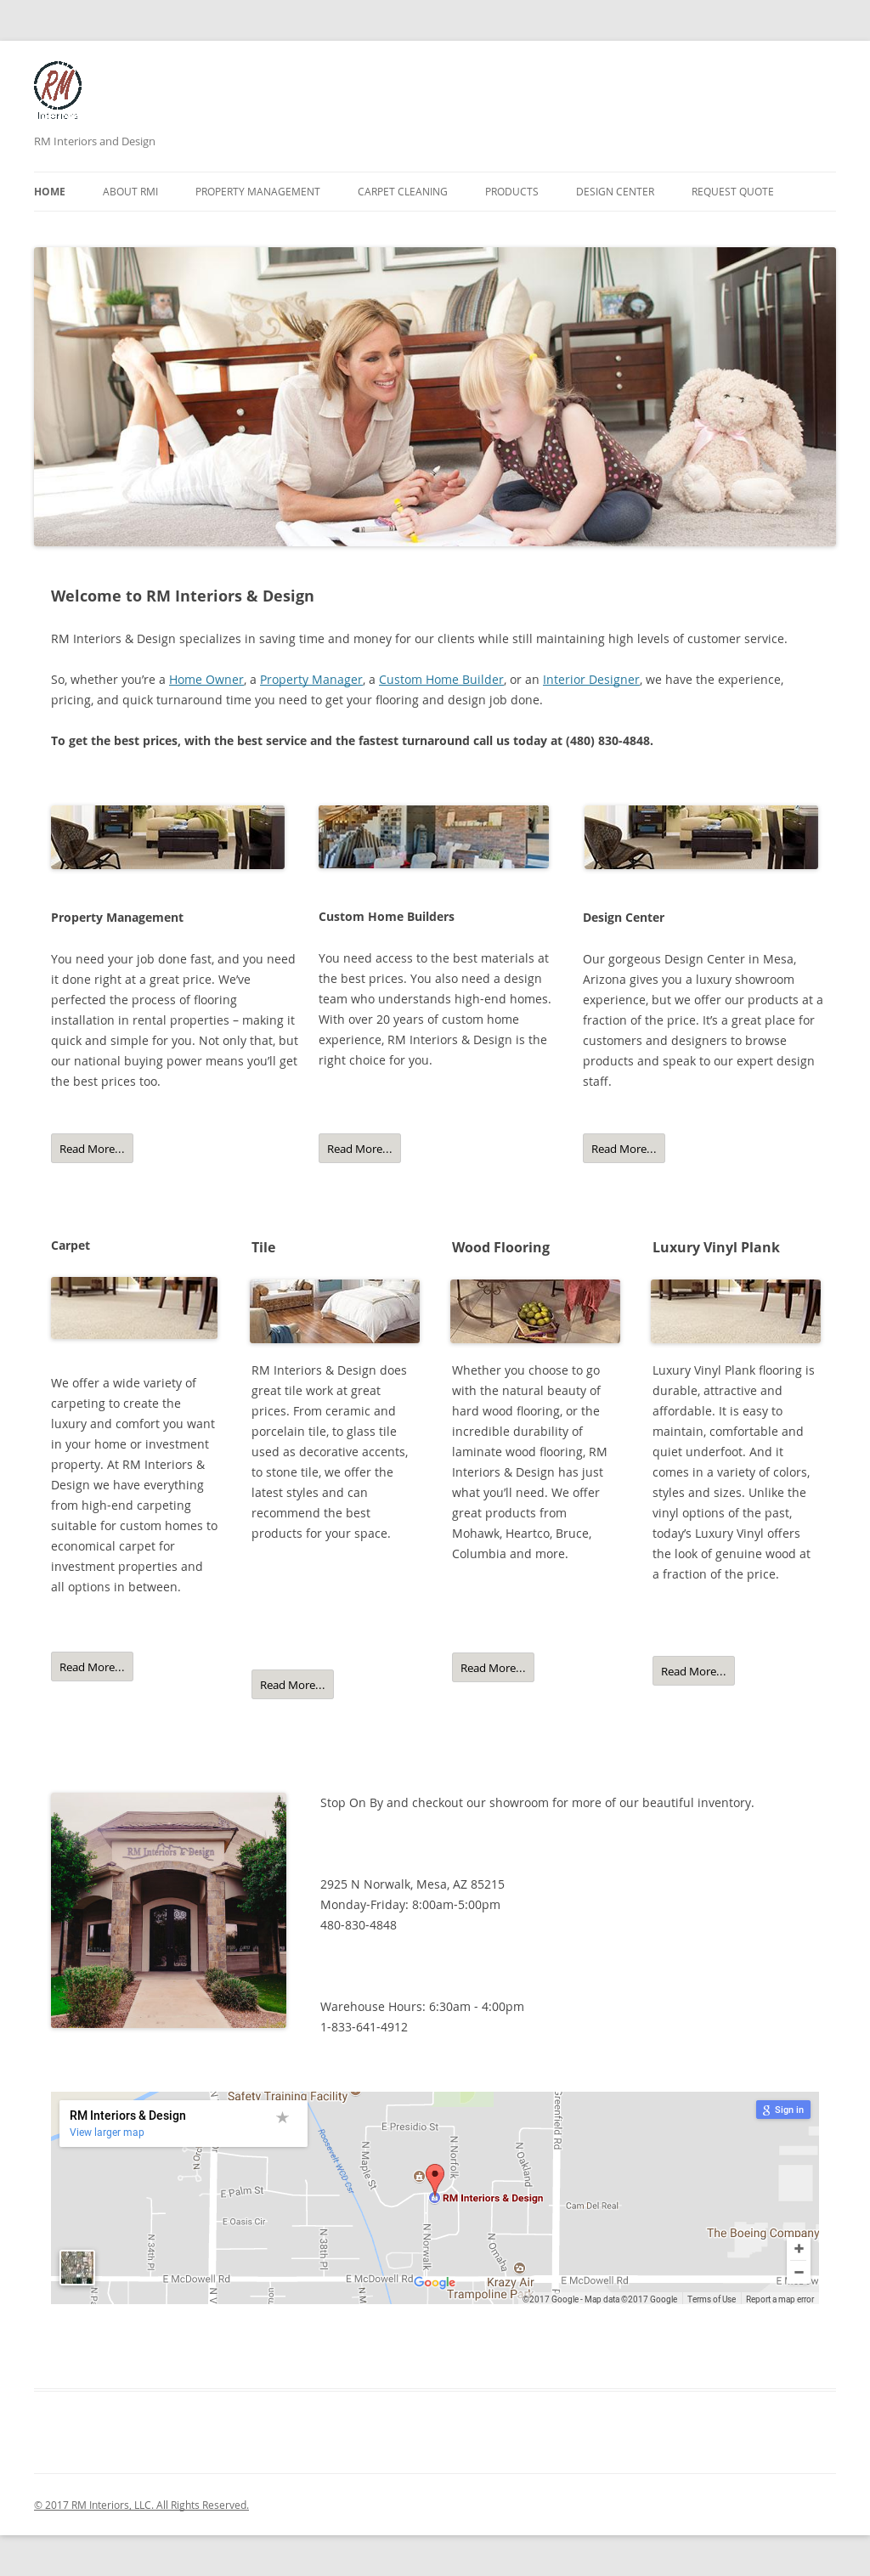 Rm Interiors Design Competitors Revenue And Employees Owler Company Profile